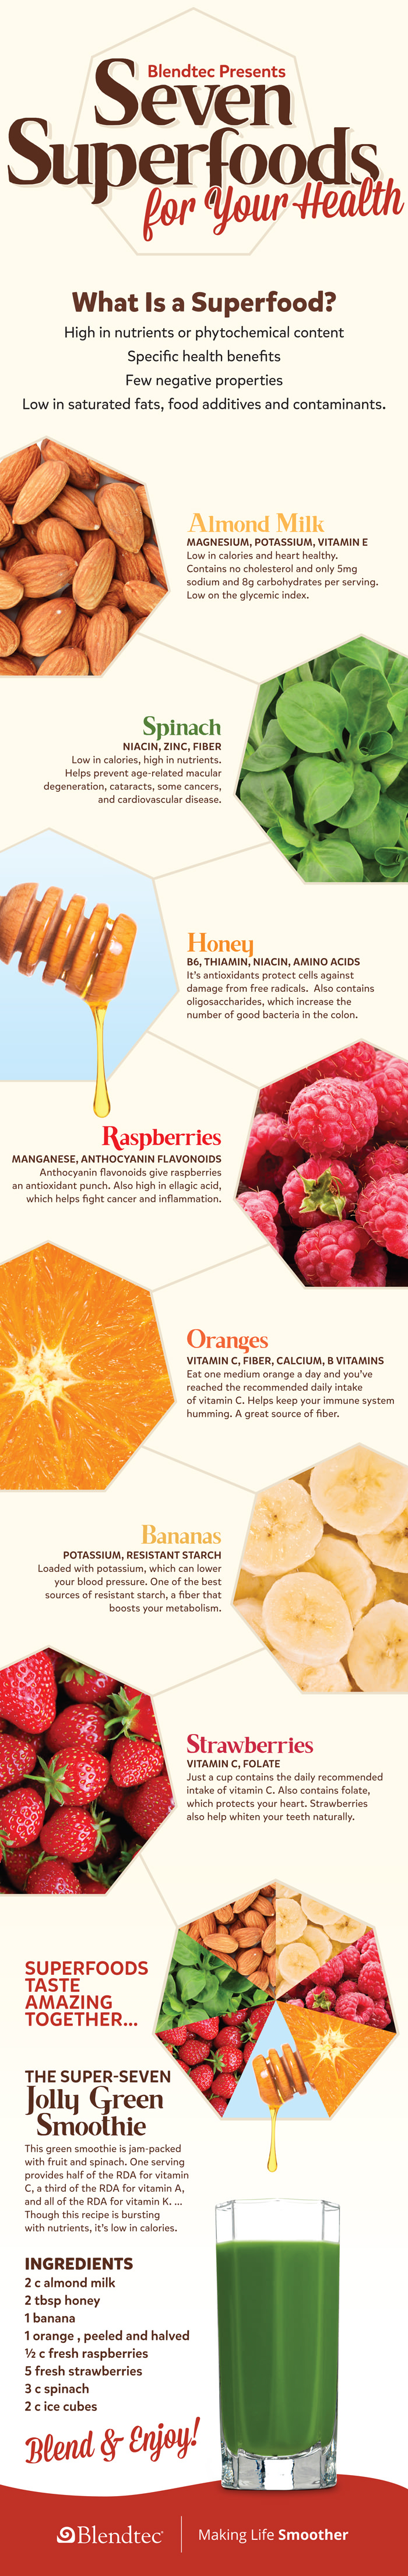 SevenSuperfoods_Infographic